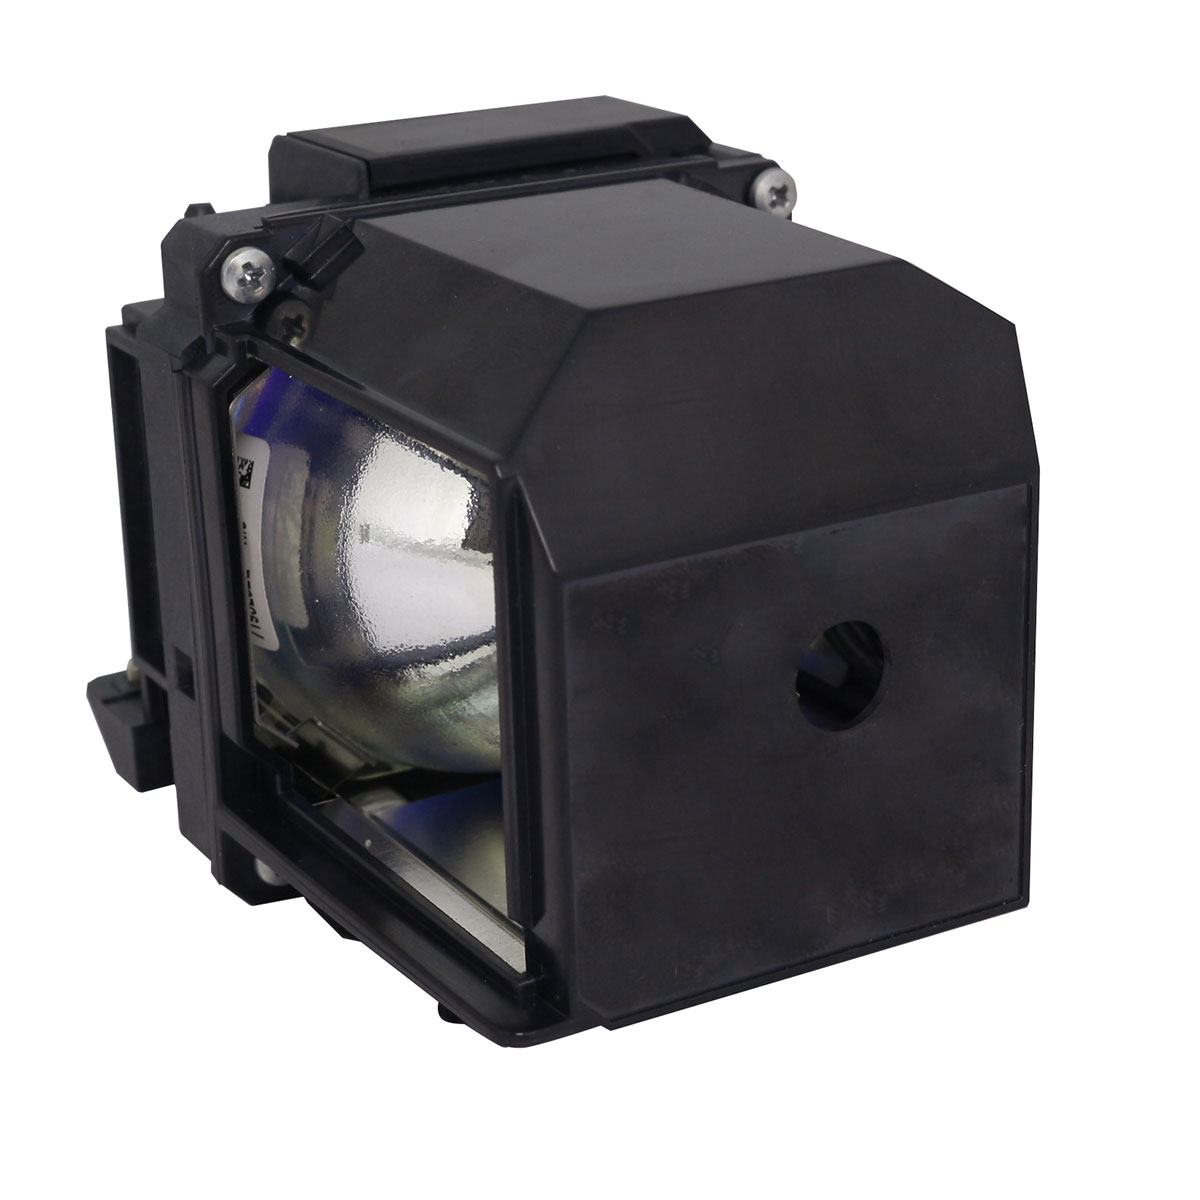 Original Osram Projector Lamp Replacement with Housing for Epson V13H010L96 - image 4 of 5